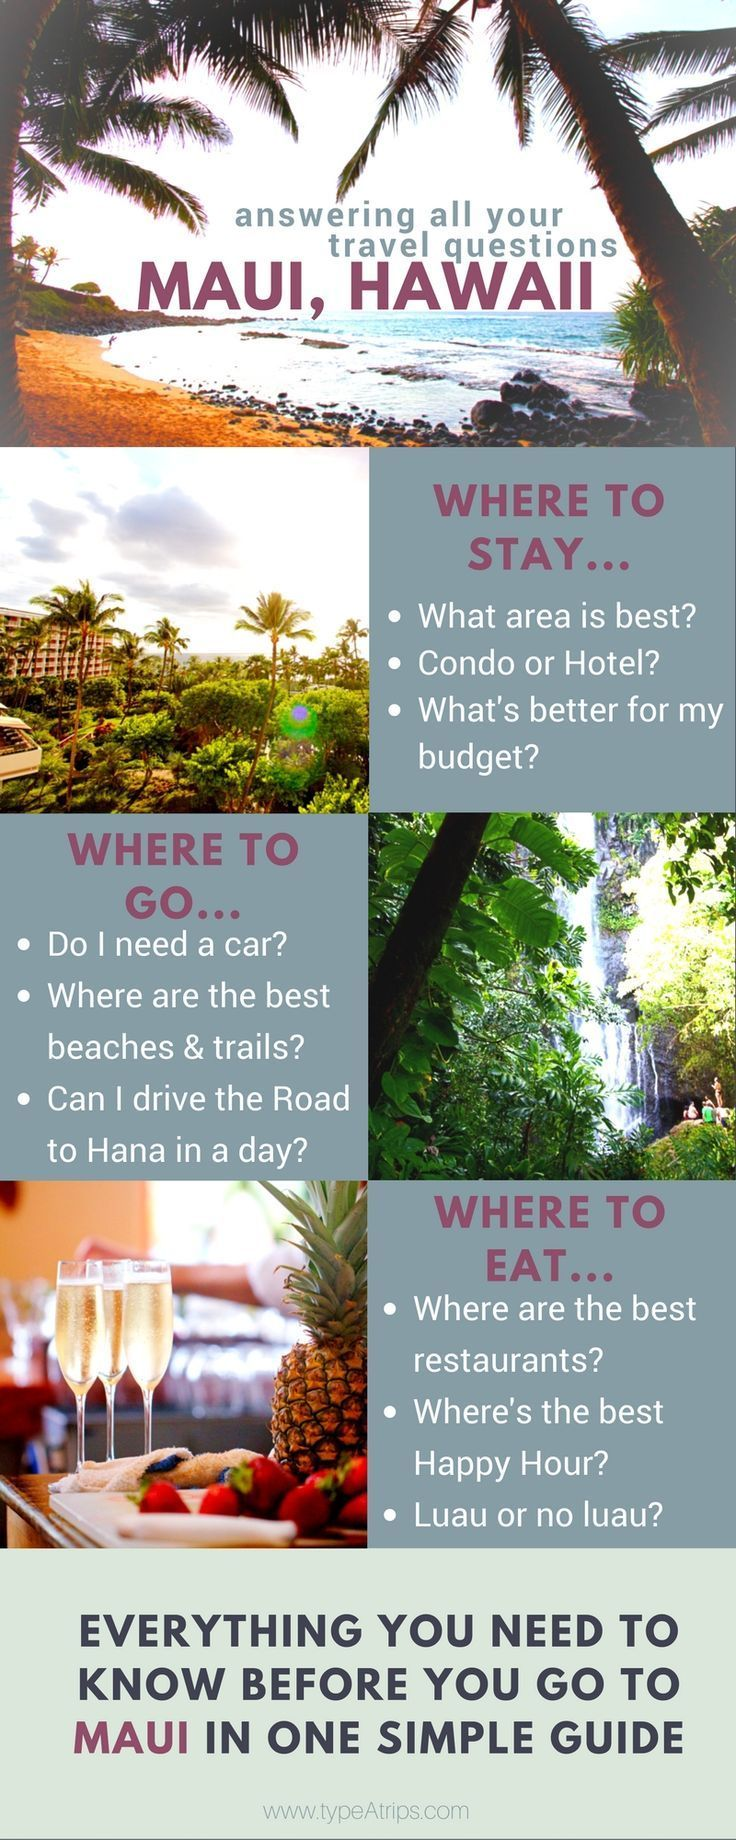 Maui, Hawaii - All You Need to Know Before You Go | It's hard planning a trip to a place you've never been and I had so many questions when I was planning my first trip - what part of the island should I stay at? Should I spend time in different areas or just one? Can I do the Road to Hana in a day? Should I stay in a condo or a hotel? Do I really need a rental car? So many questions! I'm going to answer all of these plus provide some fabulous suggestions of what to see, do and eat a